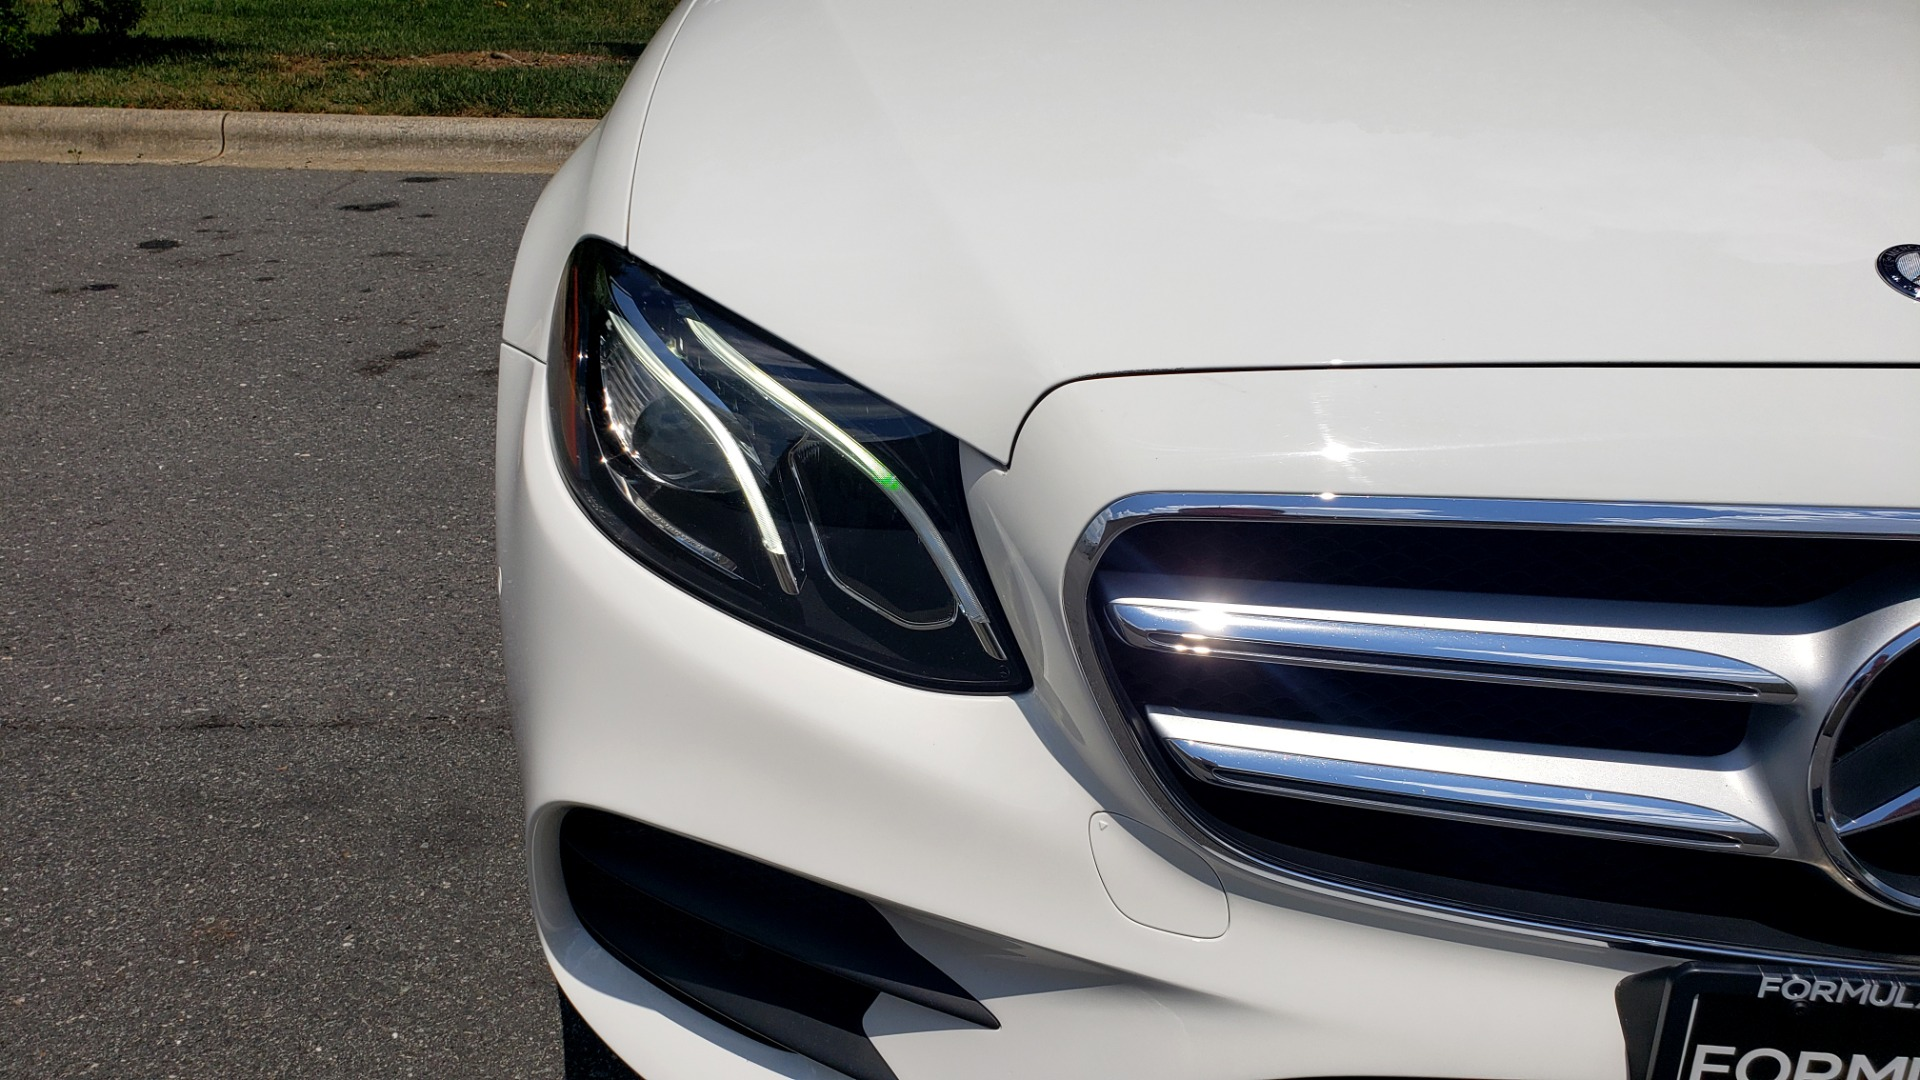 Used 2017 Mercedes-Benz E-CLASS E 300 PREMIUM / SPORT / NAV / SUNROOF / HTD STS / BSM / REARVIEW for sale $27,995 at Formula Imports in Charlotte NC 28227 19